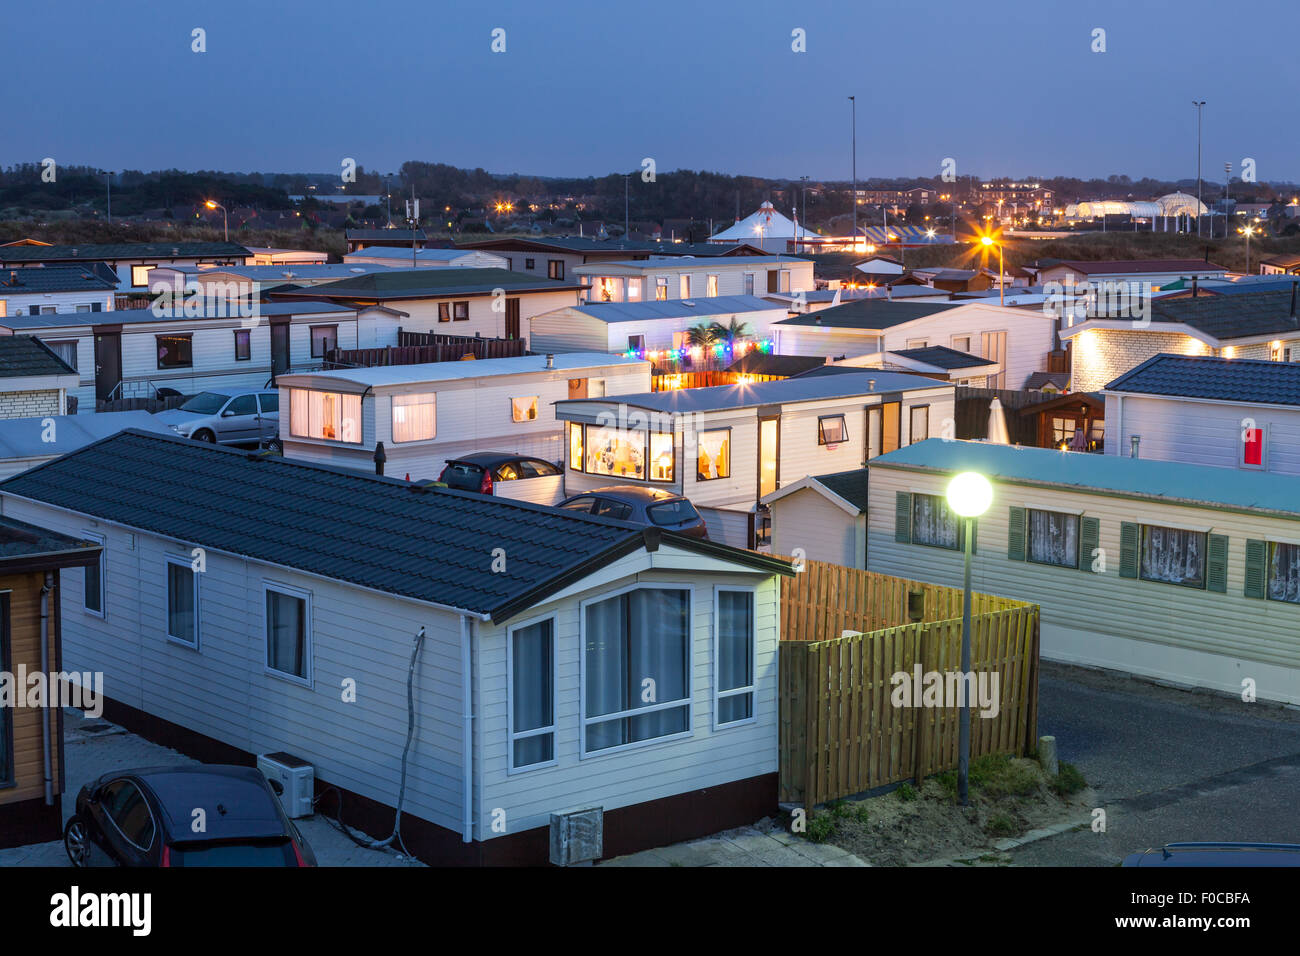 Mobile homes on a trailer park at dusk Stock Photo